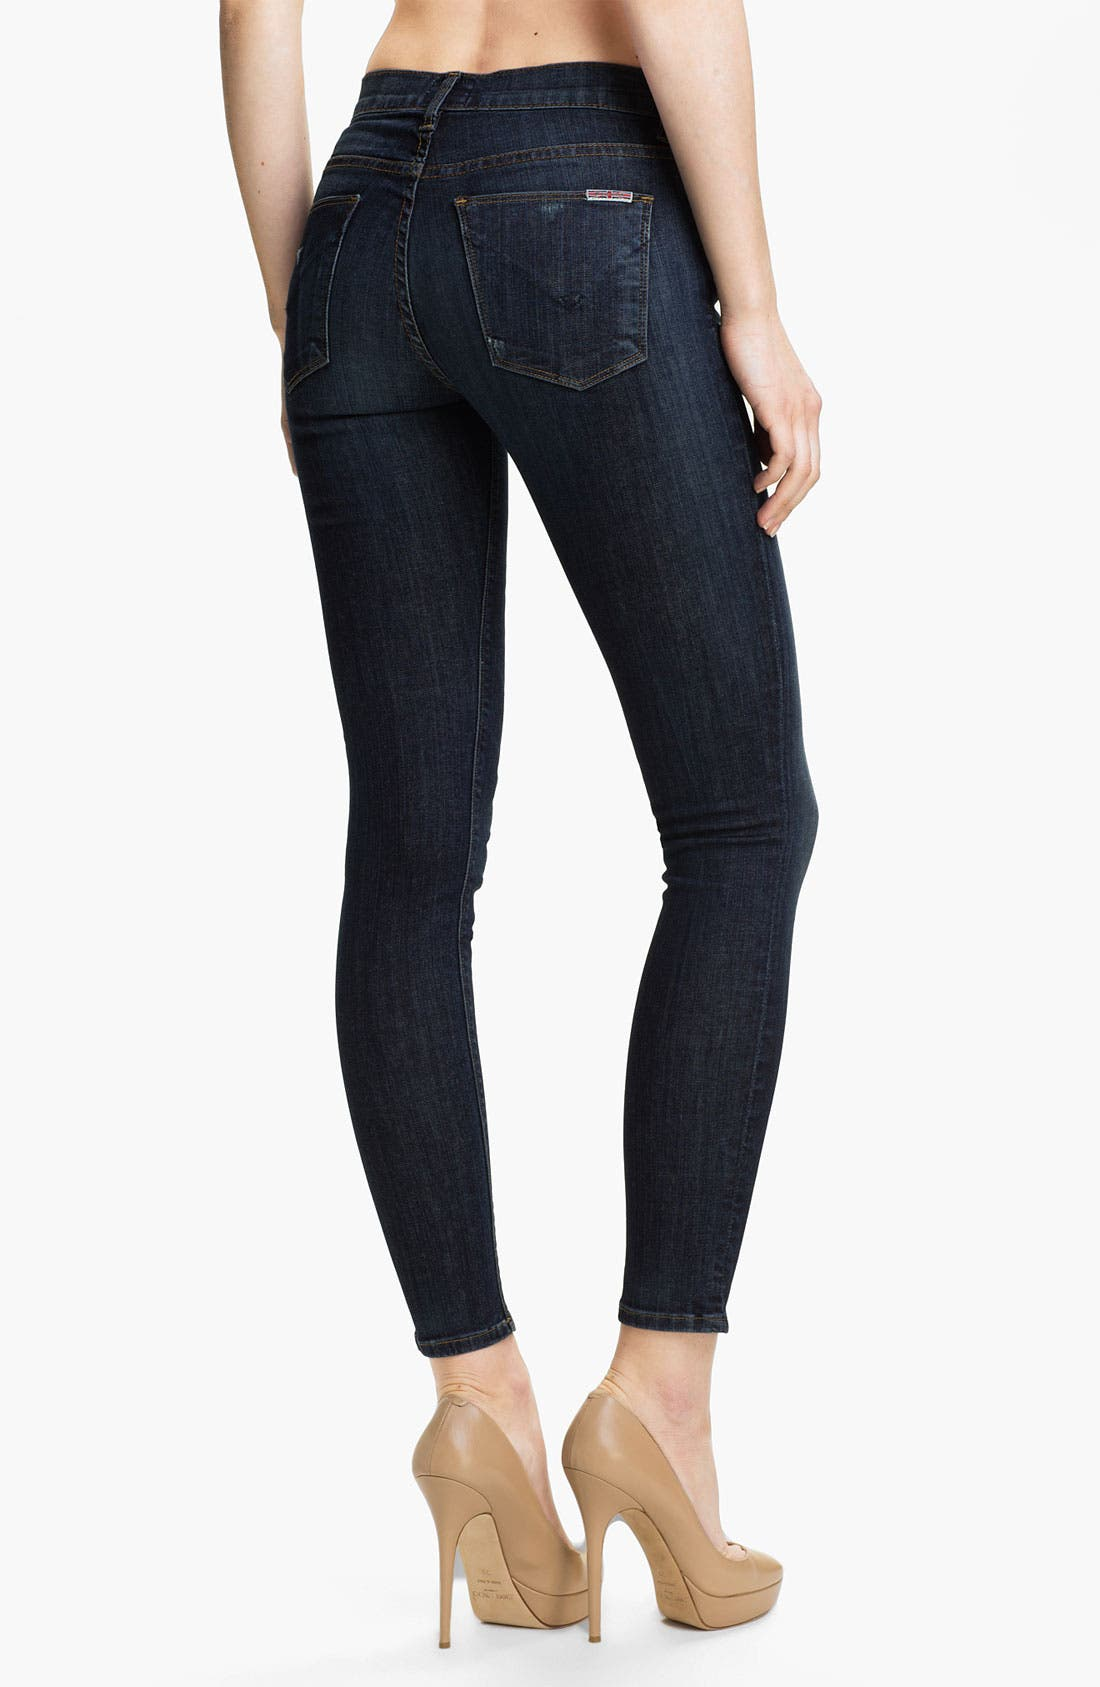 Alternate Image 2  - Hudson Jeans 'Nico' Mid Rise Skinny Jeans (Hoxton)